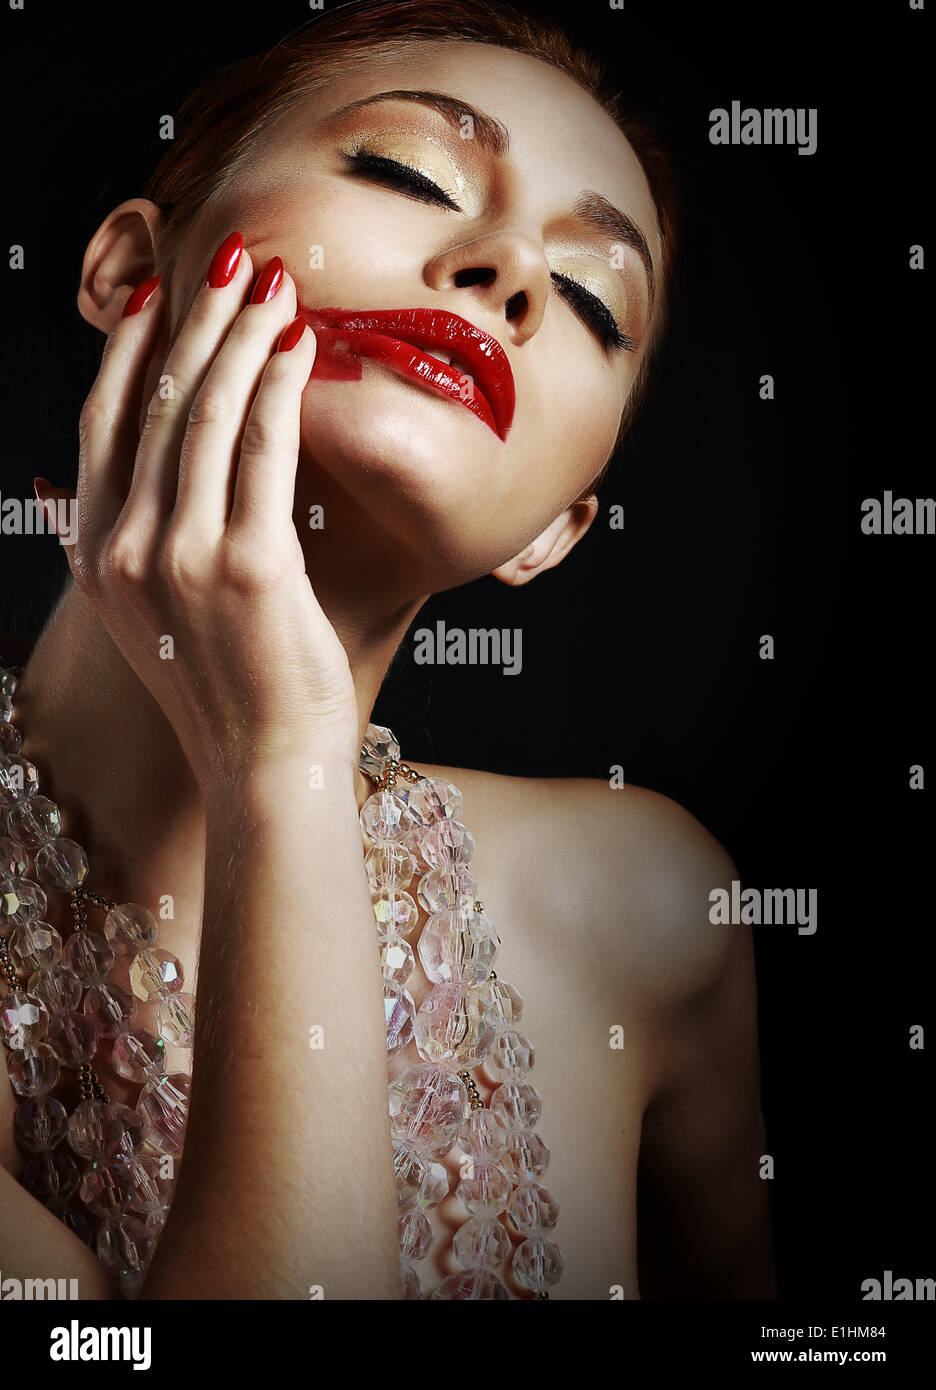 Woman with Smeared Red Lipstick over Black Backround - Stock Image